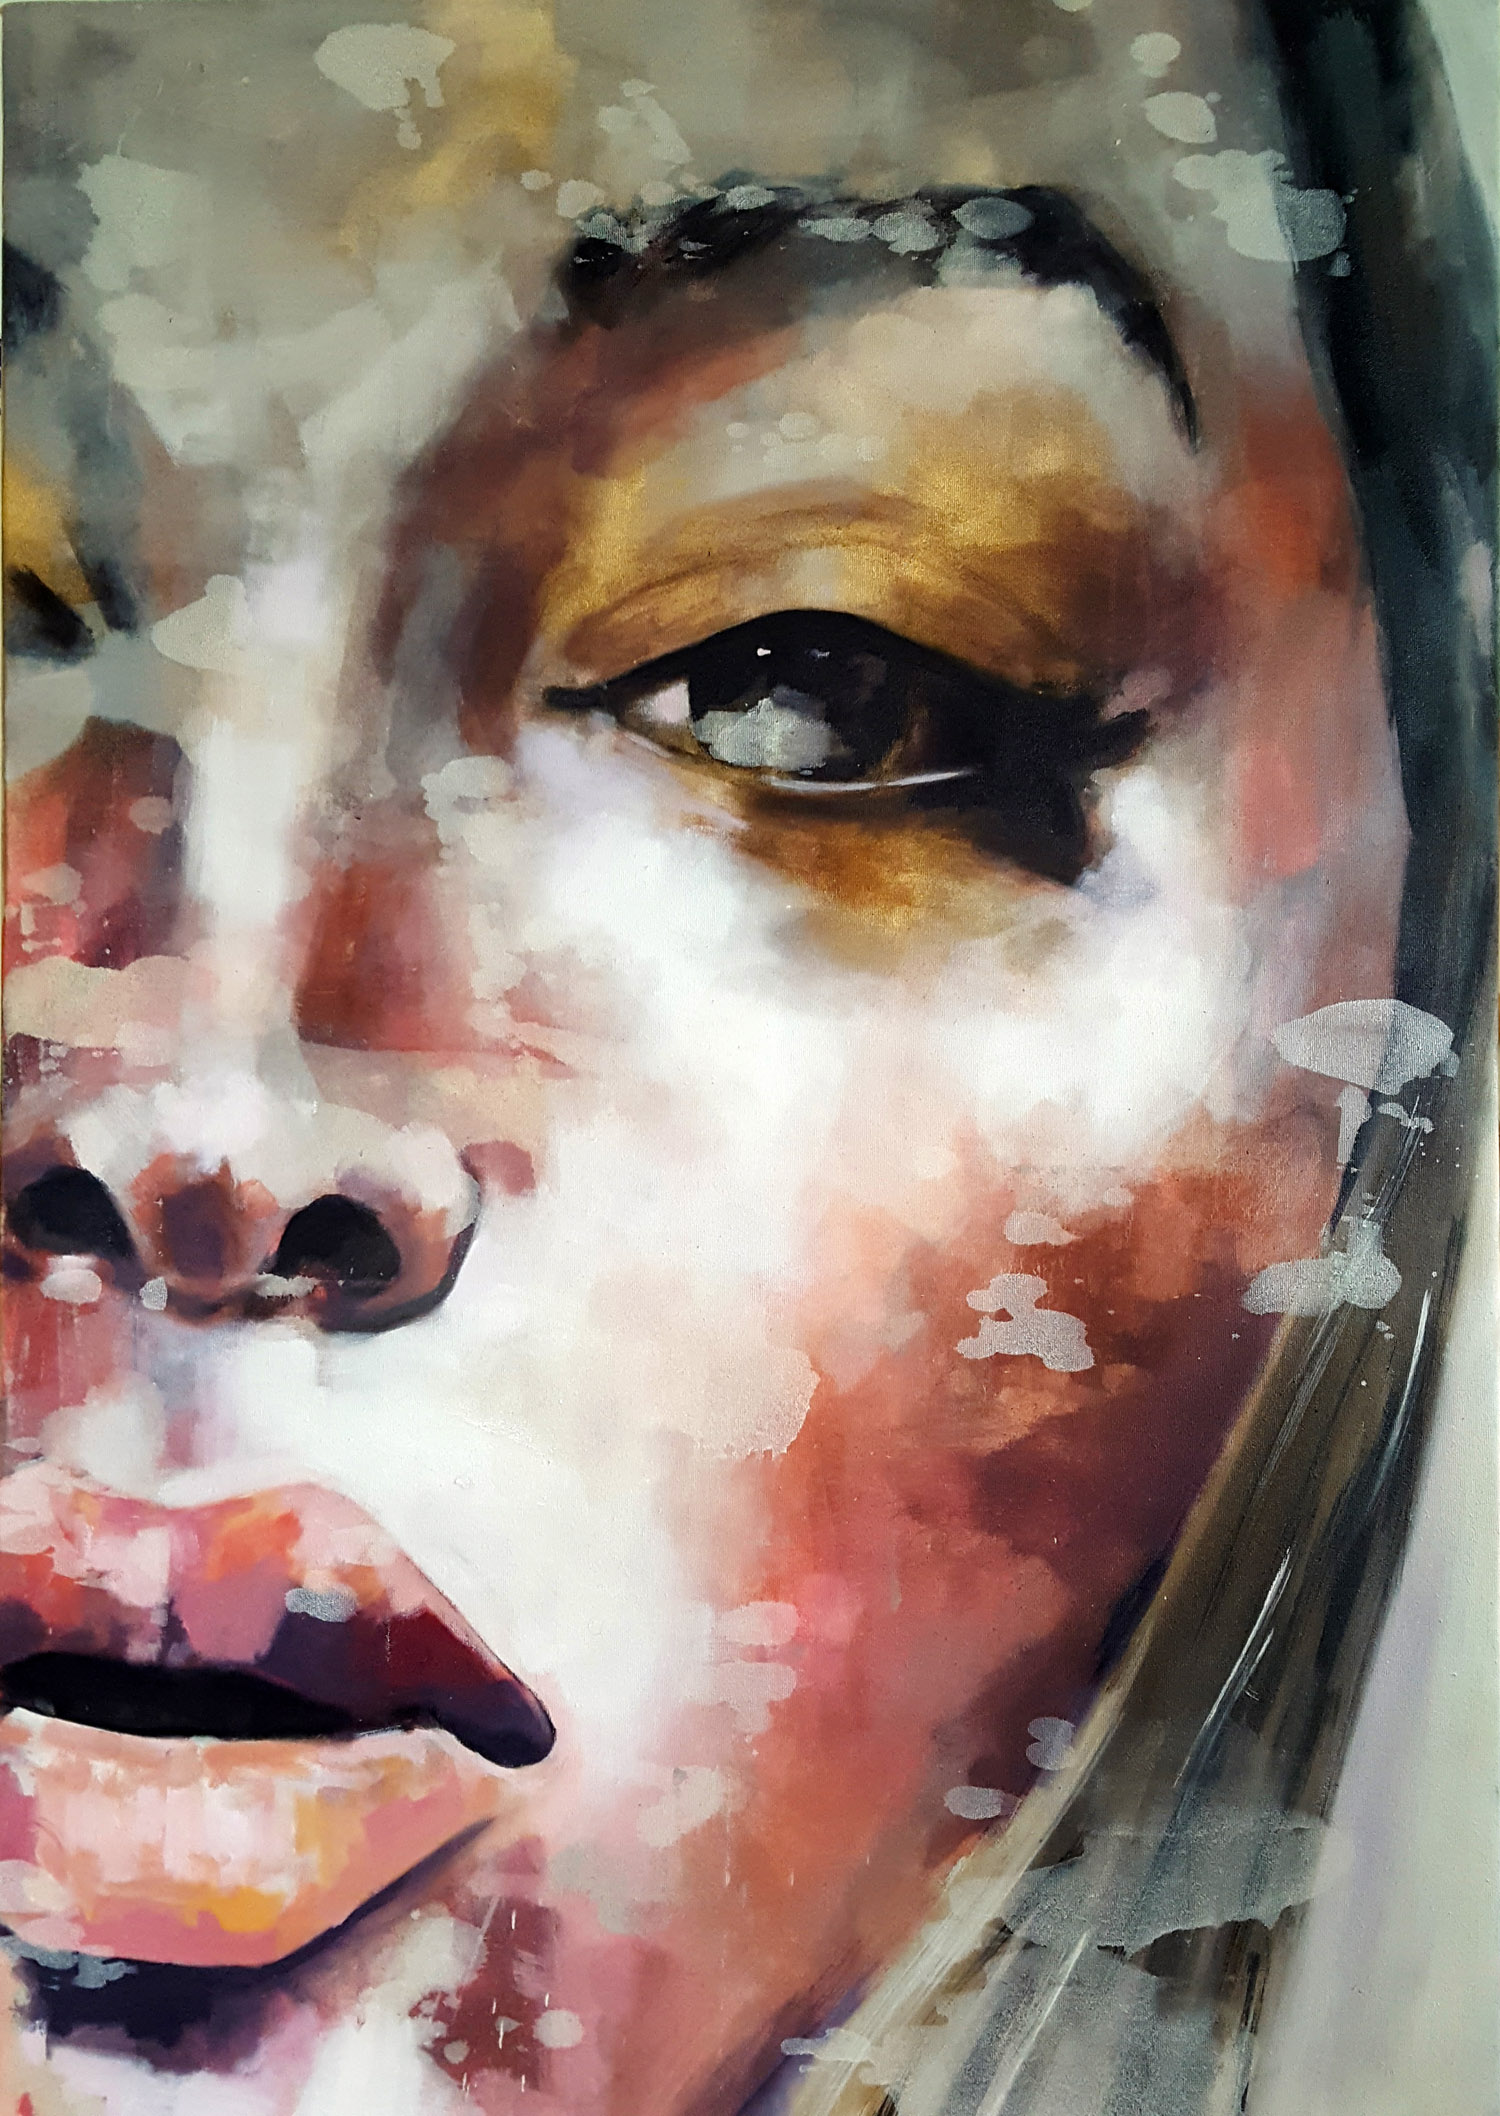 10-1-17 gold eye makeup, oil on canvas, 100x70cm